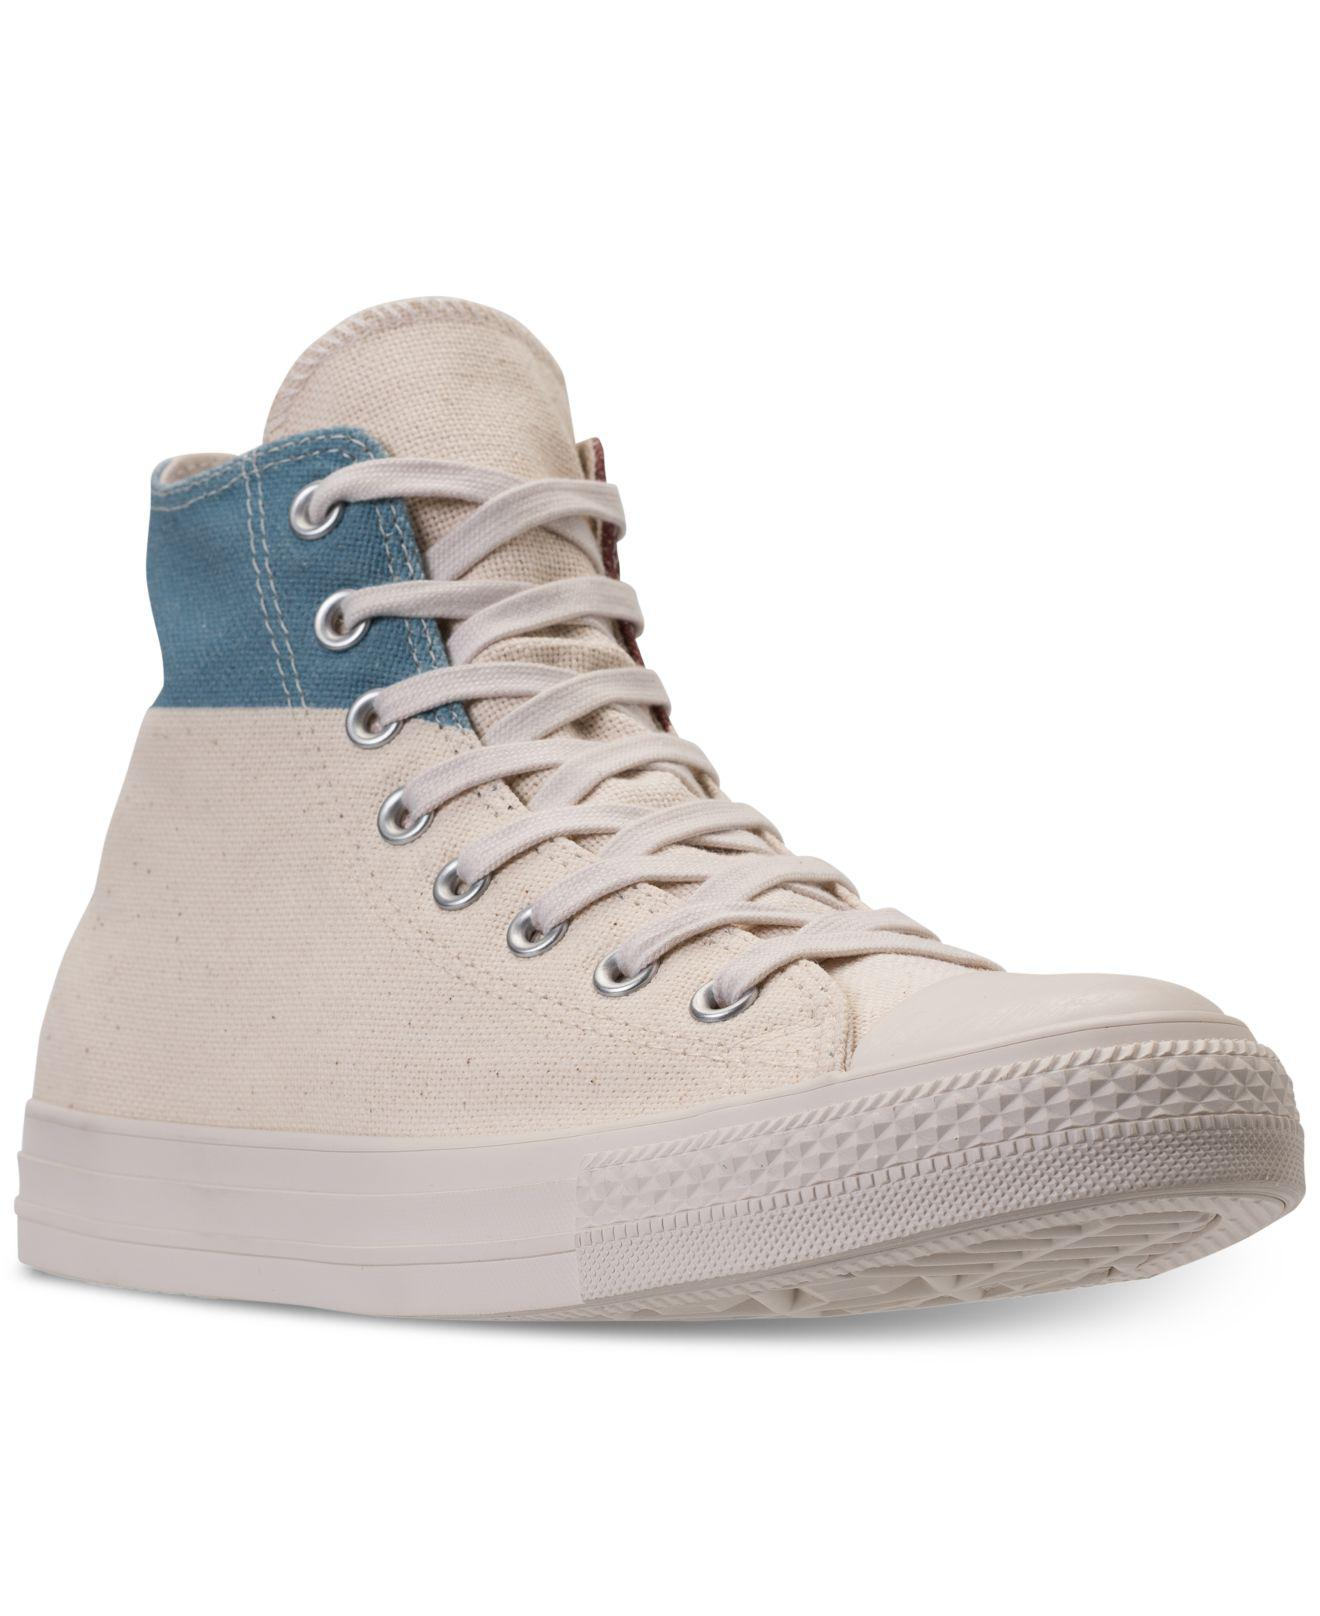 346166e53ea6 Lyst - Converse Chuck Taylor All Star High Top Casual Sneakers From ...